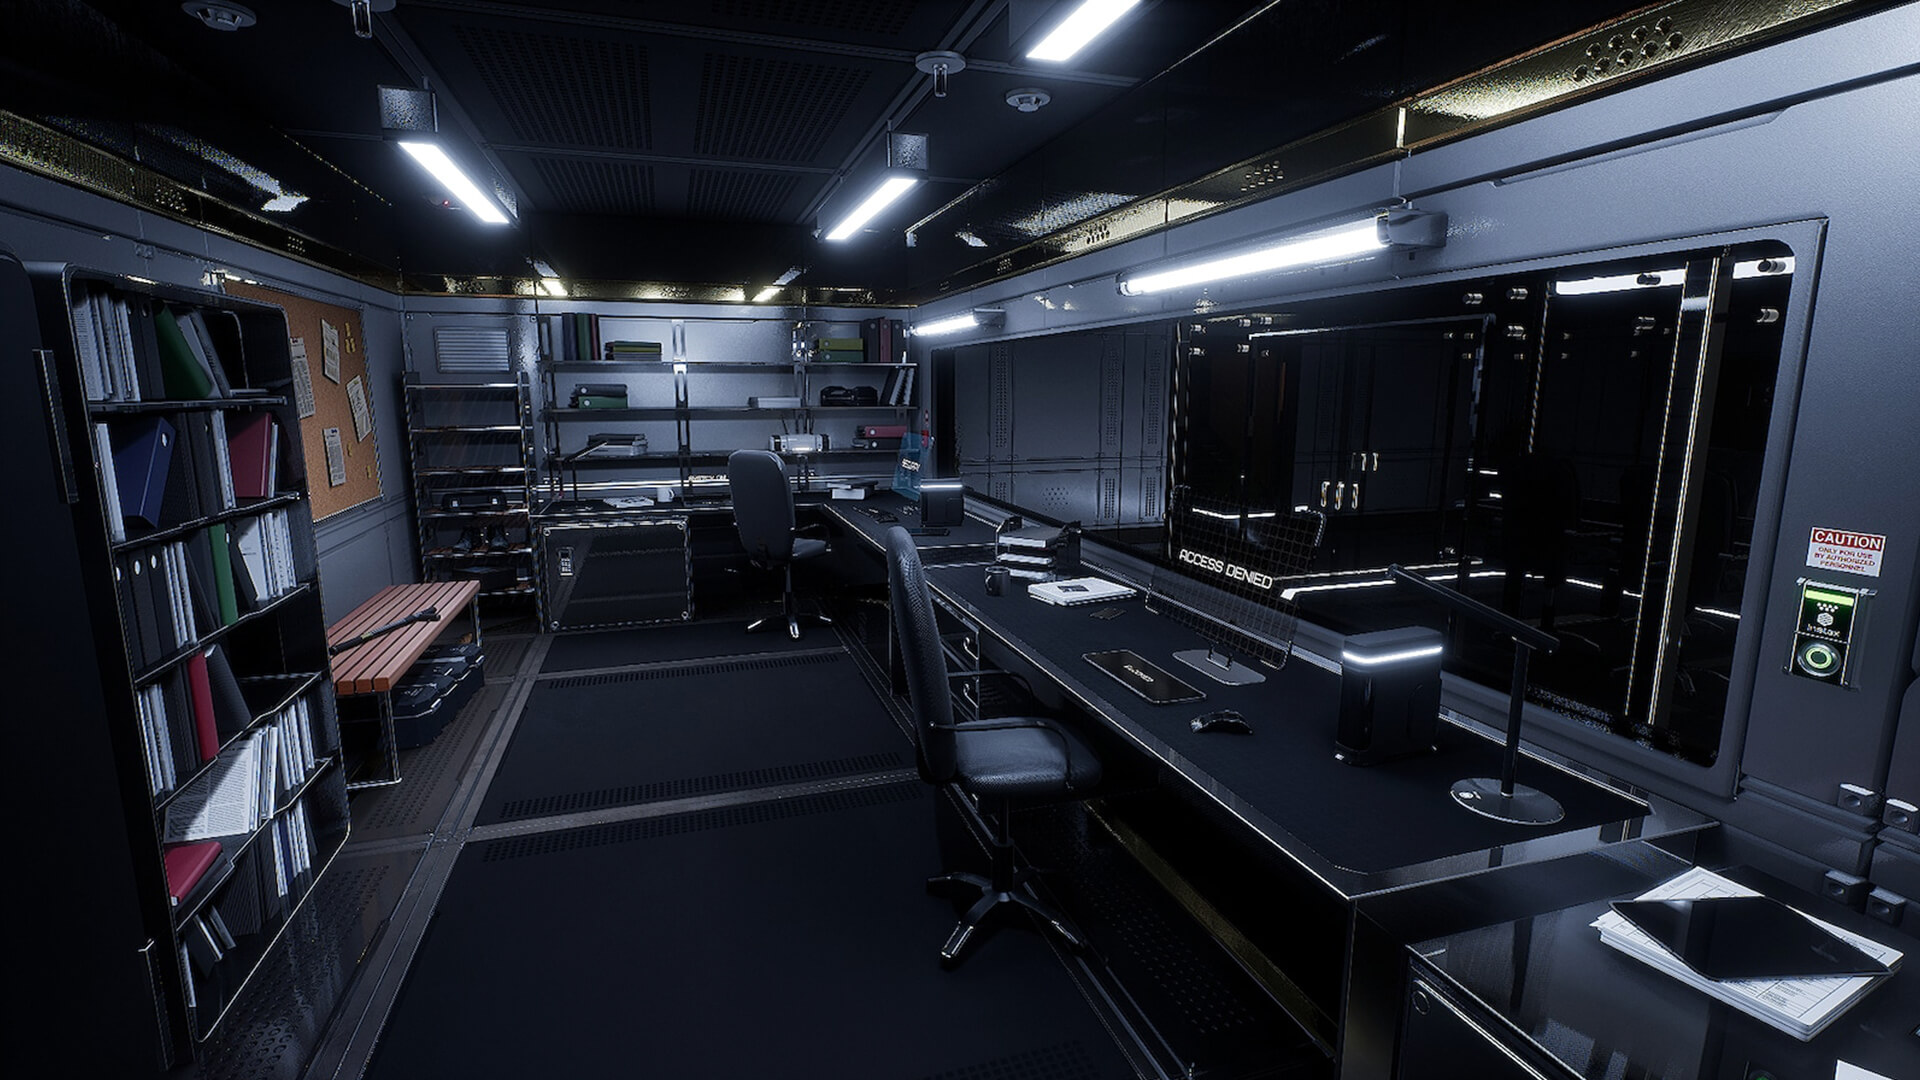 Body Free Marketplace Aug 2021 SciFi Office